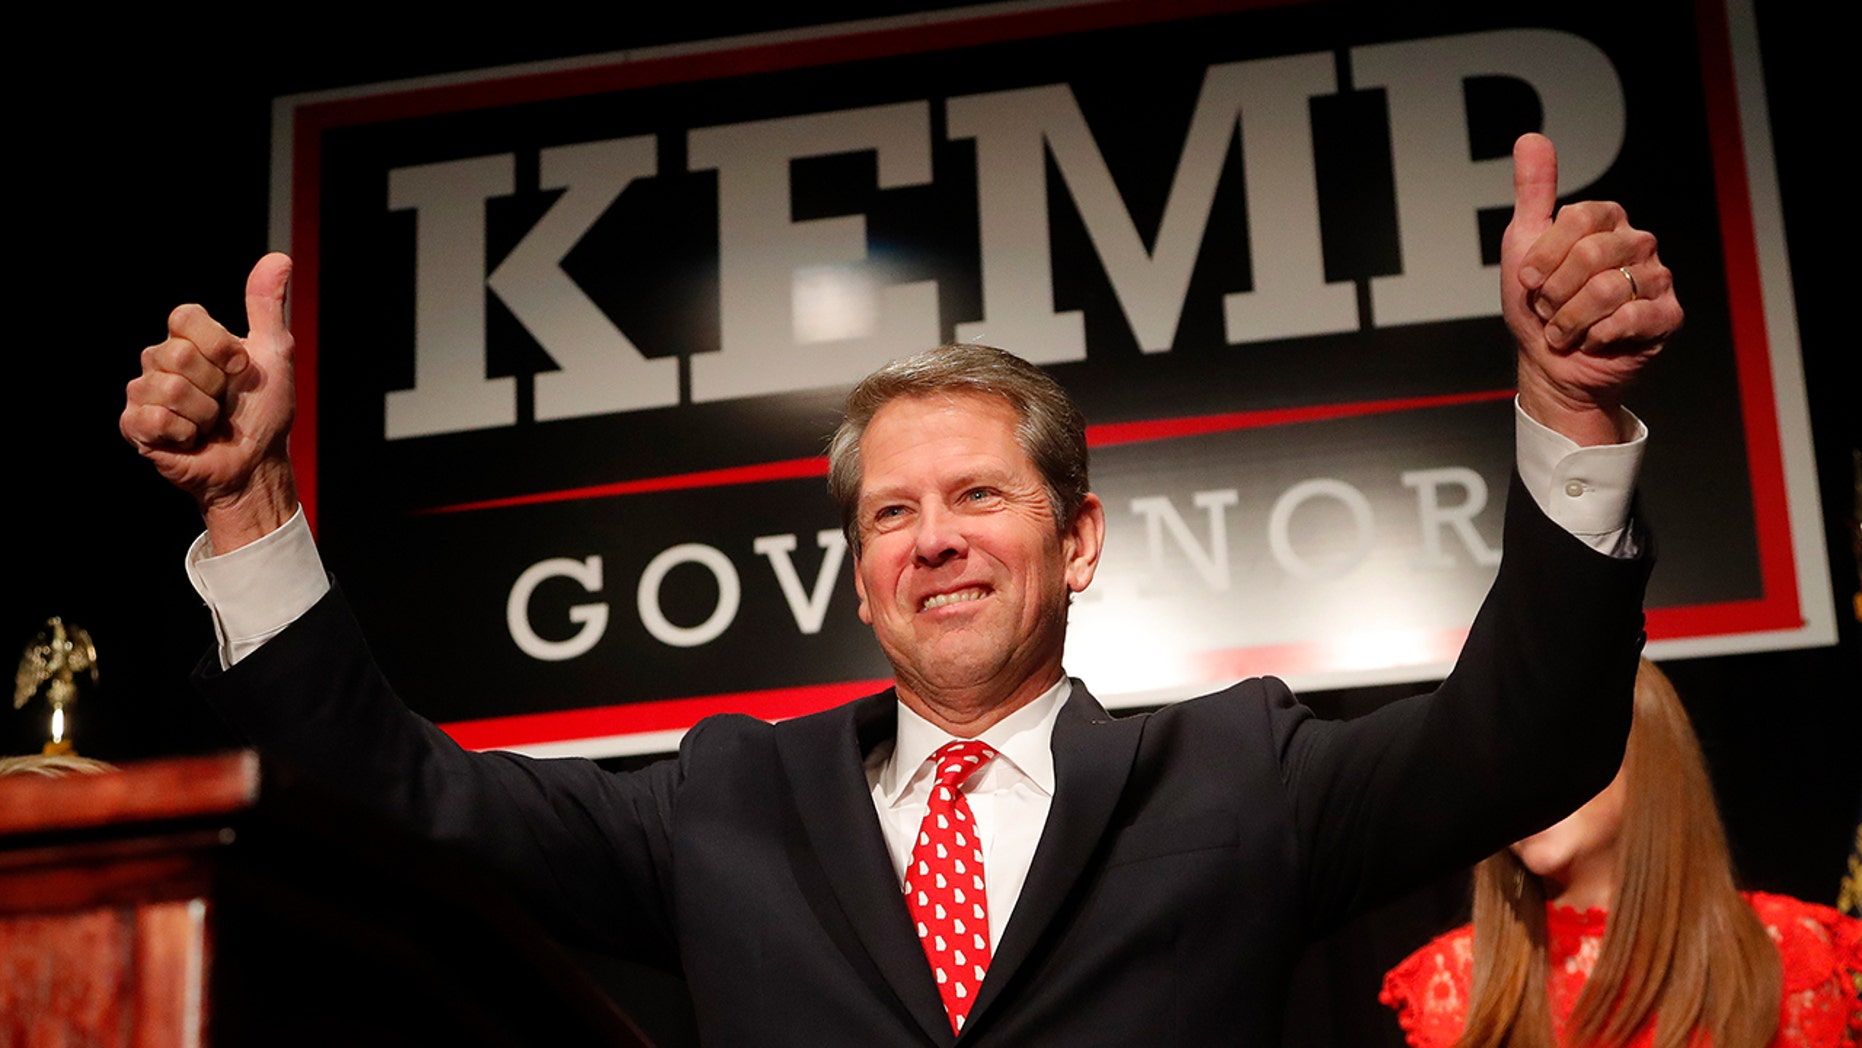 Georgia Republican gubernatorial candidate Brian Kemp gives a thumbs-up to supporters, Wednesday, Nov. 7, 2018, in Athens, Ga. (Associated Press)